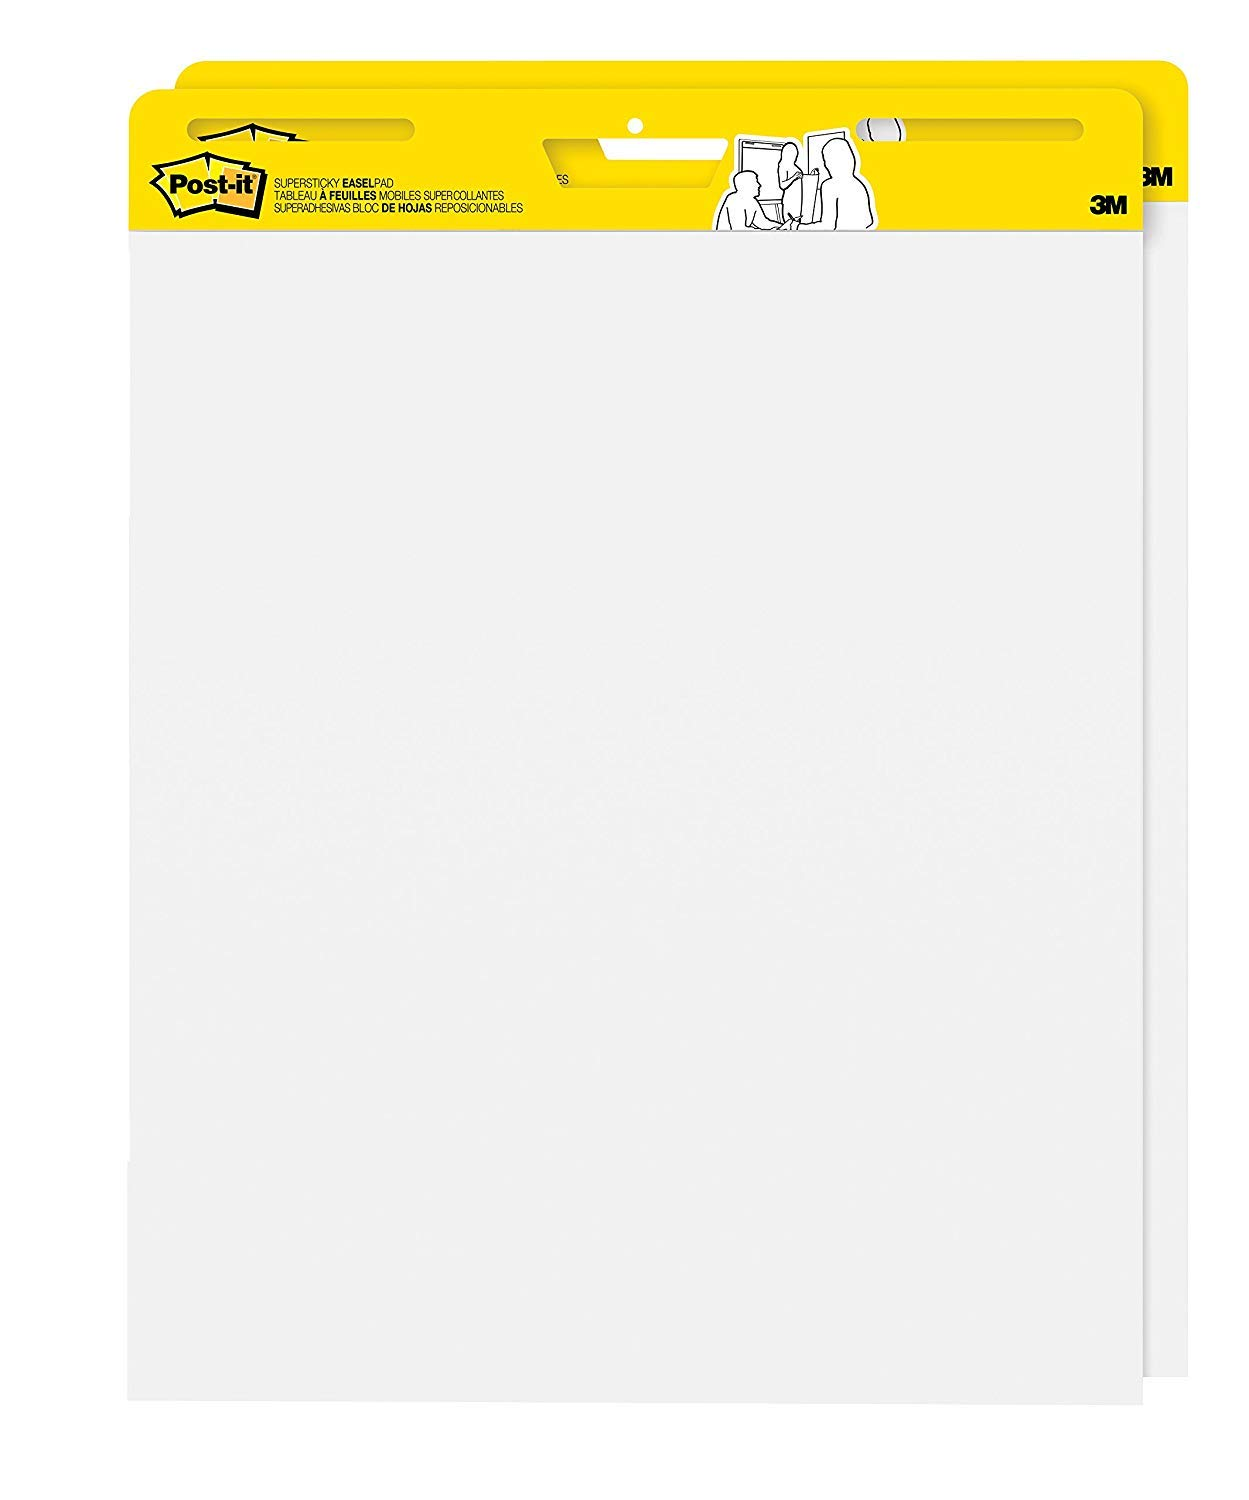 Post-it Super Sticky Easel Pad, 25 x 30 Inches, 30 Sheets/Pad, Large White Premium Self Stick Flip Chart Paper LLS, Super Sticking Power, 10 Pads